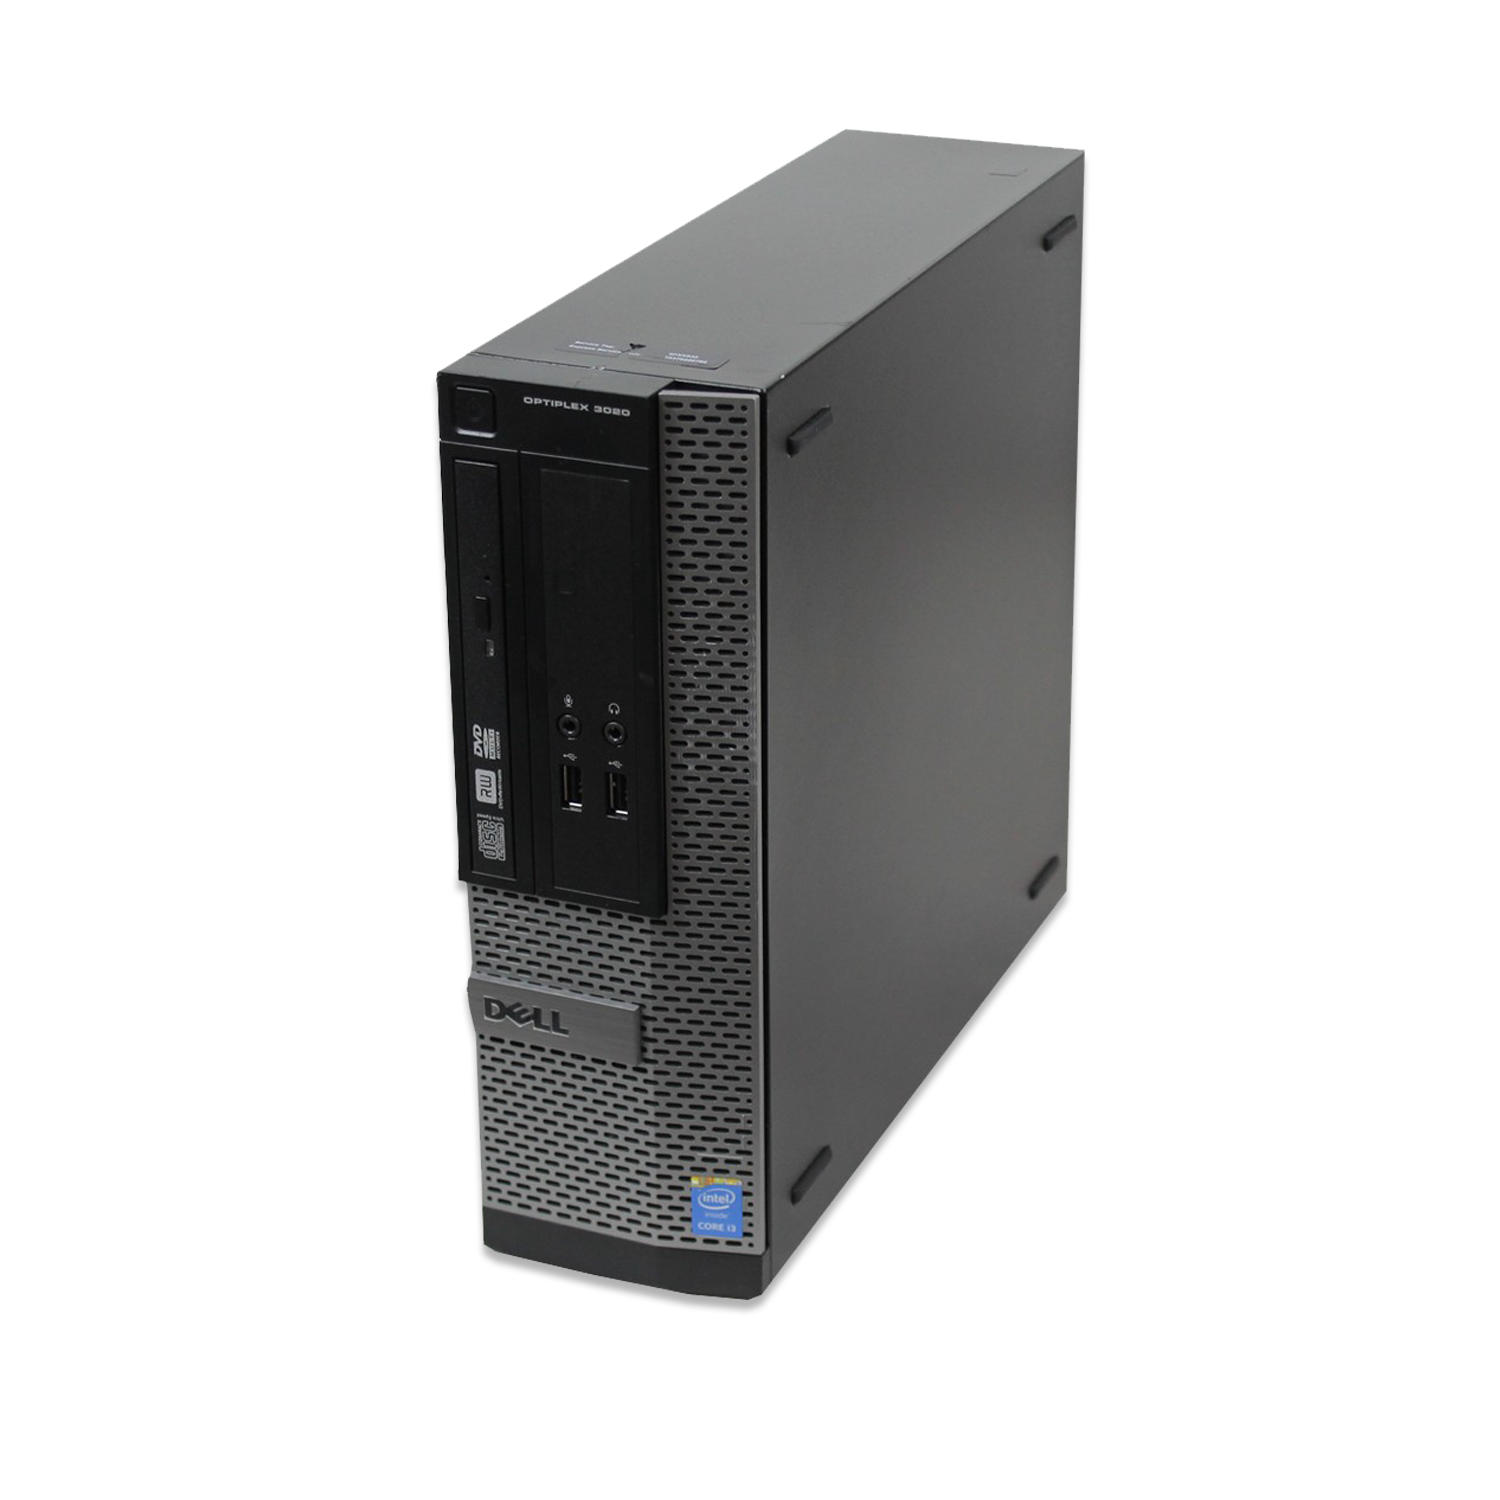 Dell Optiplex 3020 SFF i3 4th Gen. 8GB RAM 128GB SSD Win 10